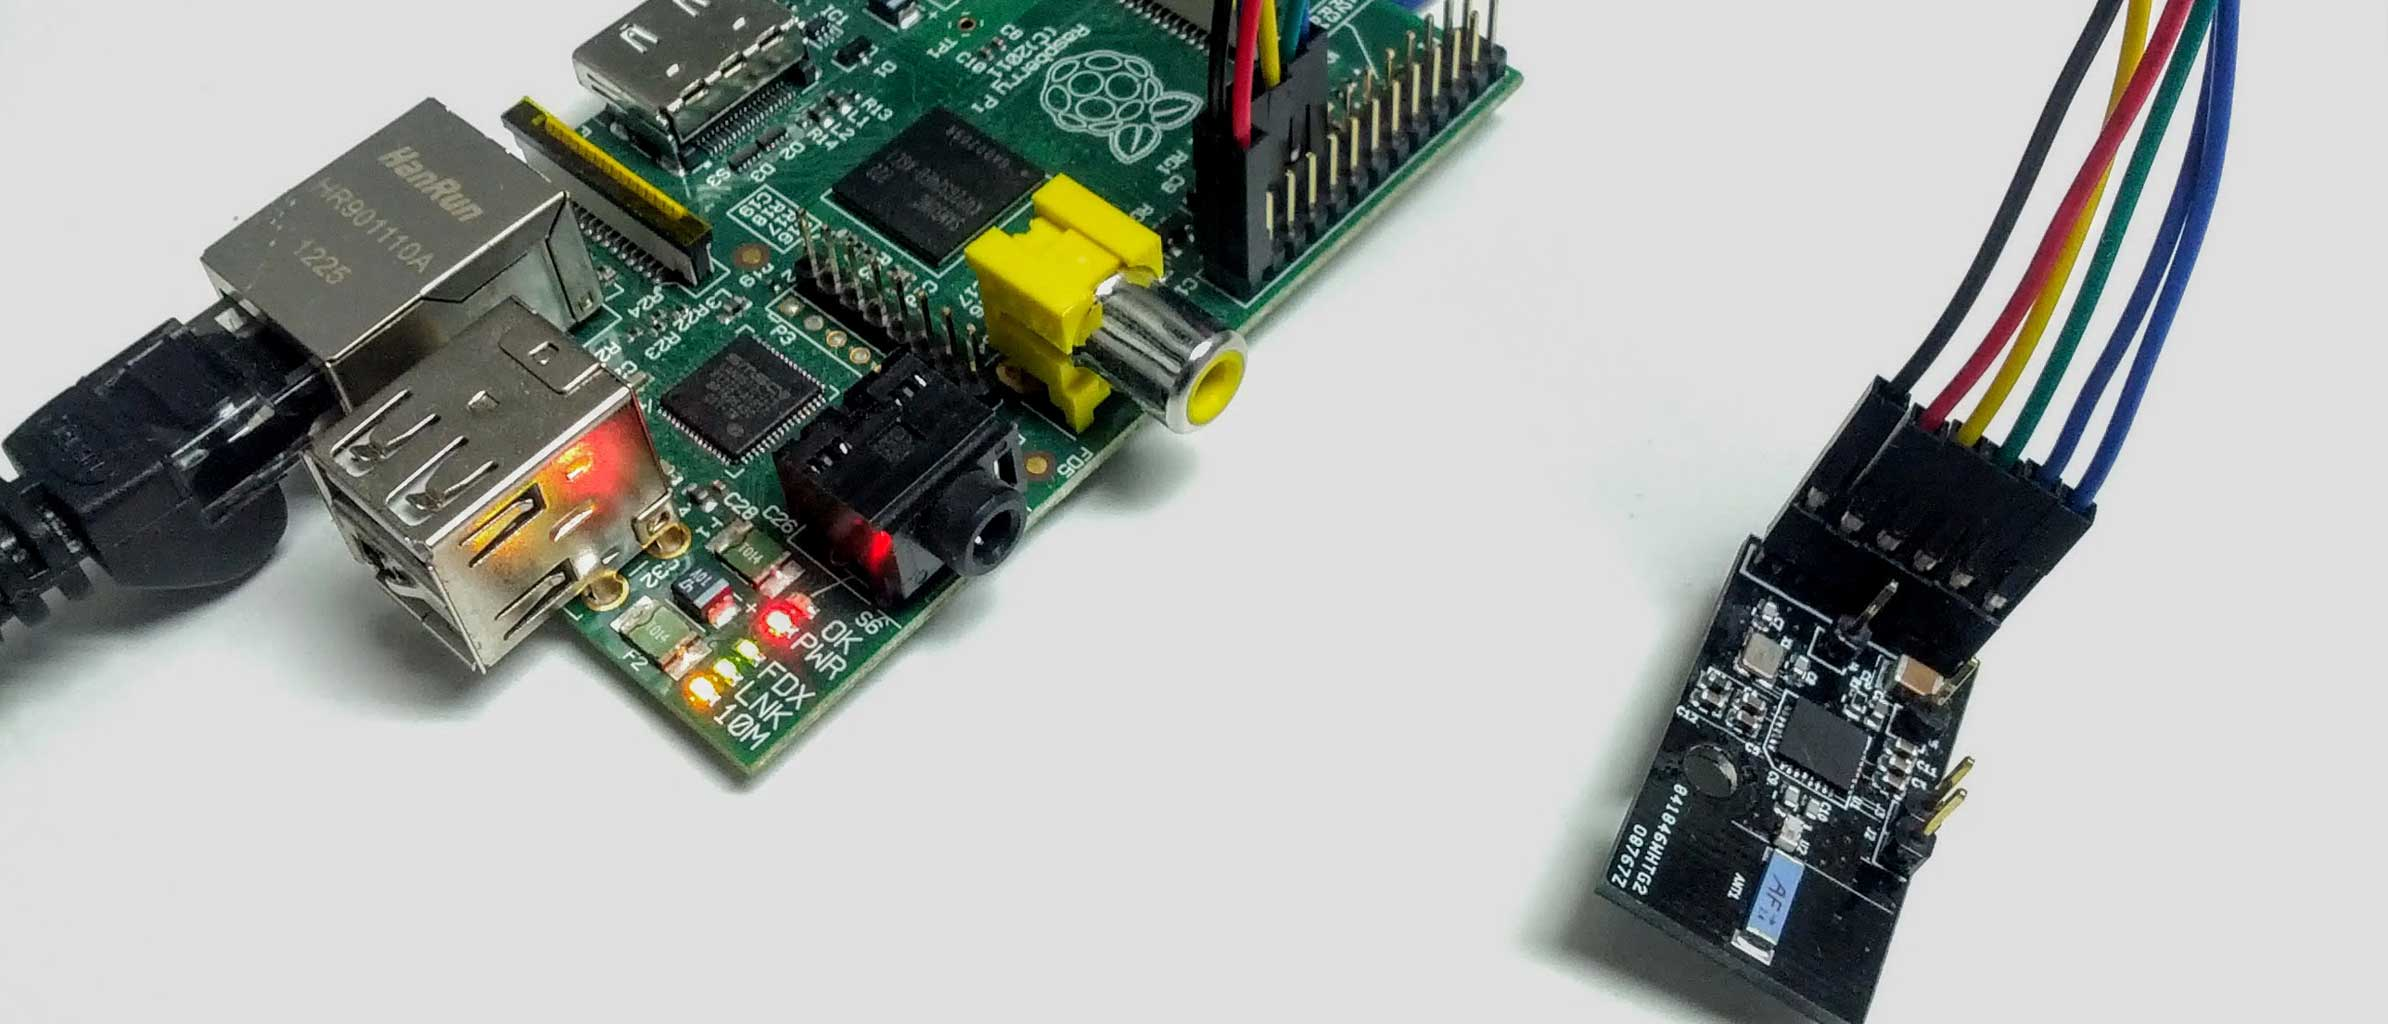 6LoWPAN kernel on a Raspberry Pi - openlabs co